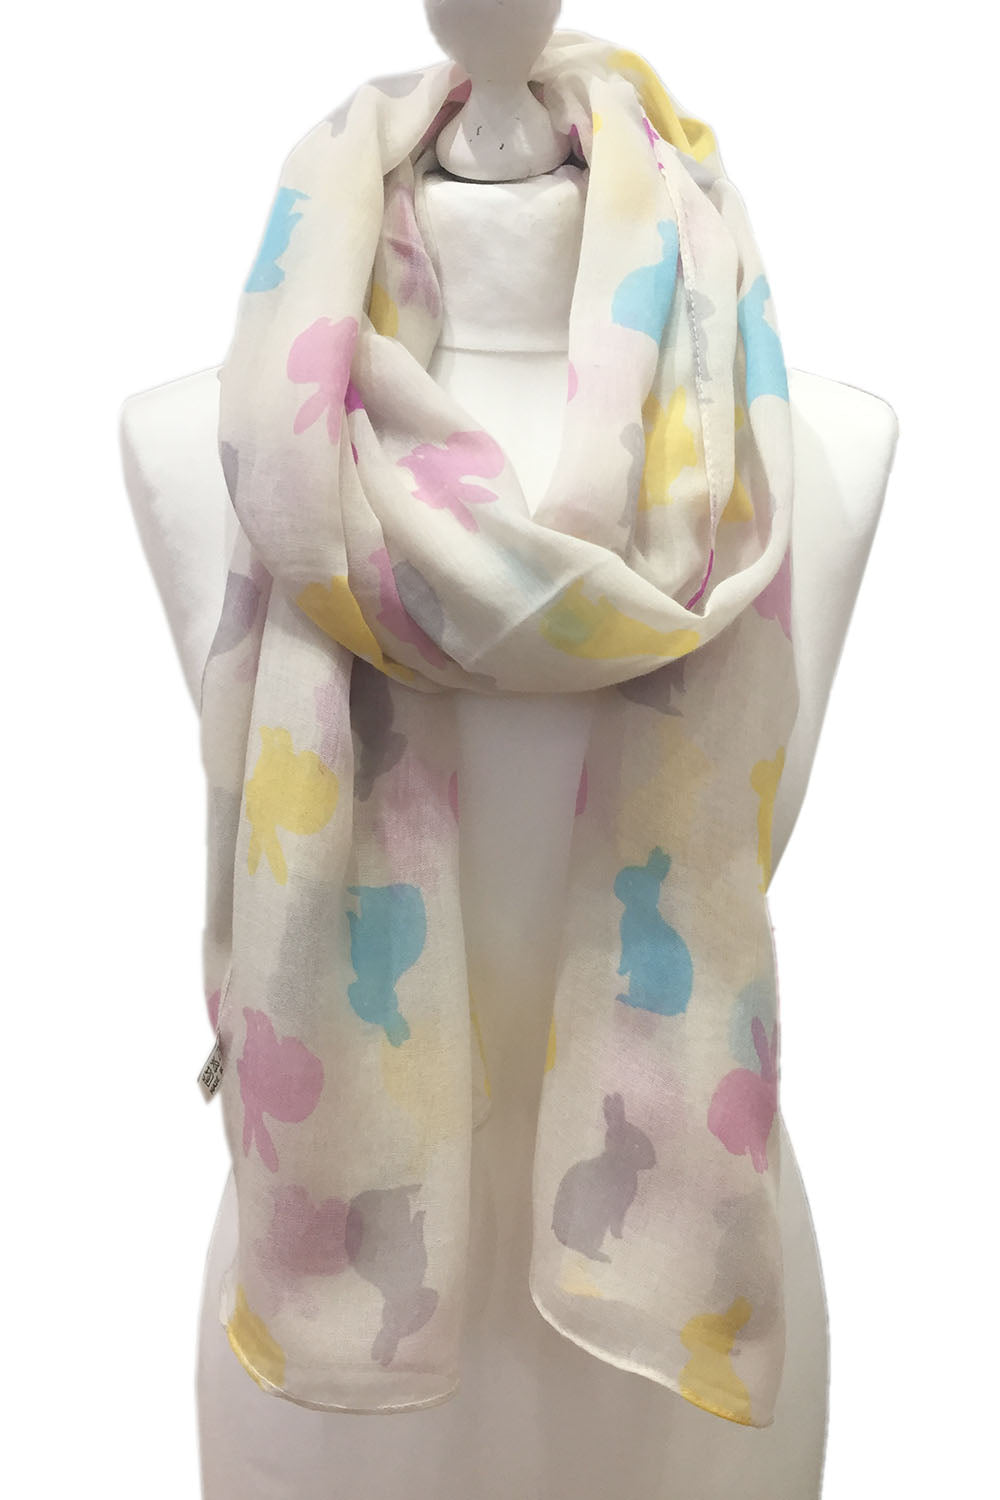 White Bunnies Scarf- Bunny rabbit printed chiffon wrap scarf